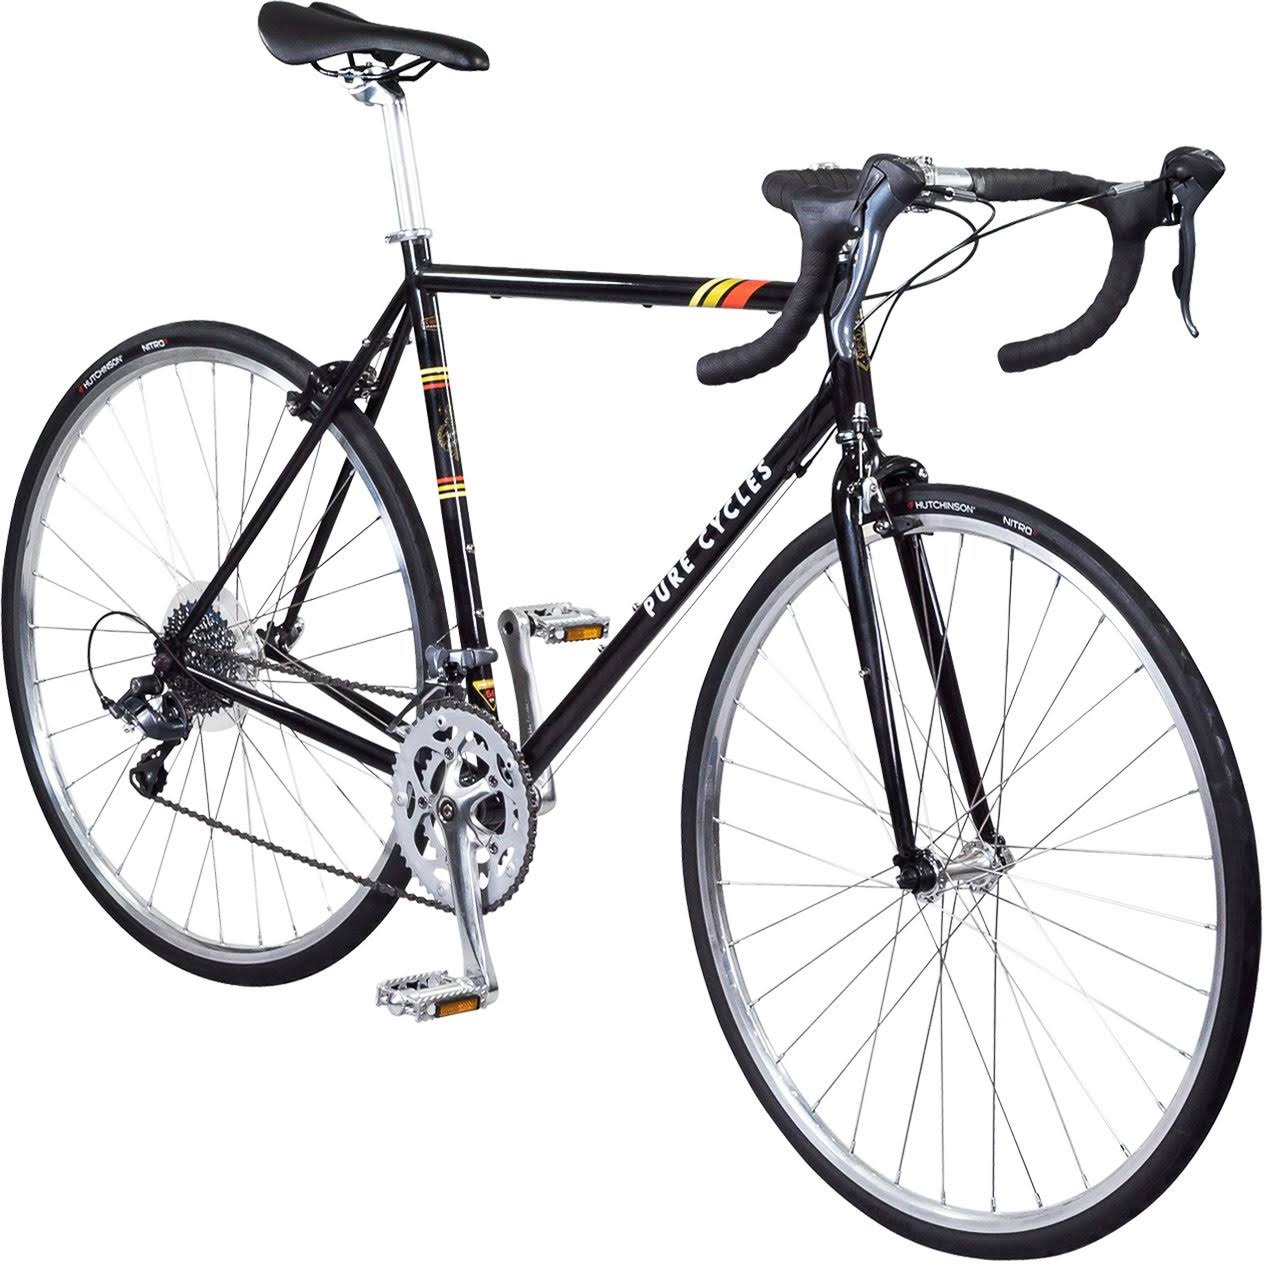 Pure Cycles Classic 16-Speed Road Bike - Veleta Black, Medium, 53cm